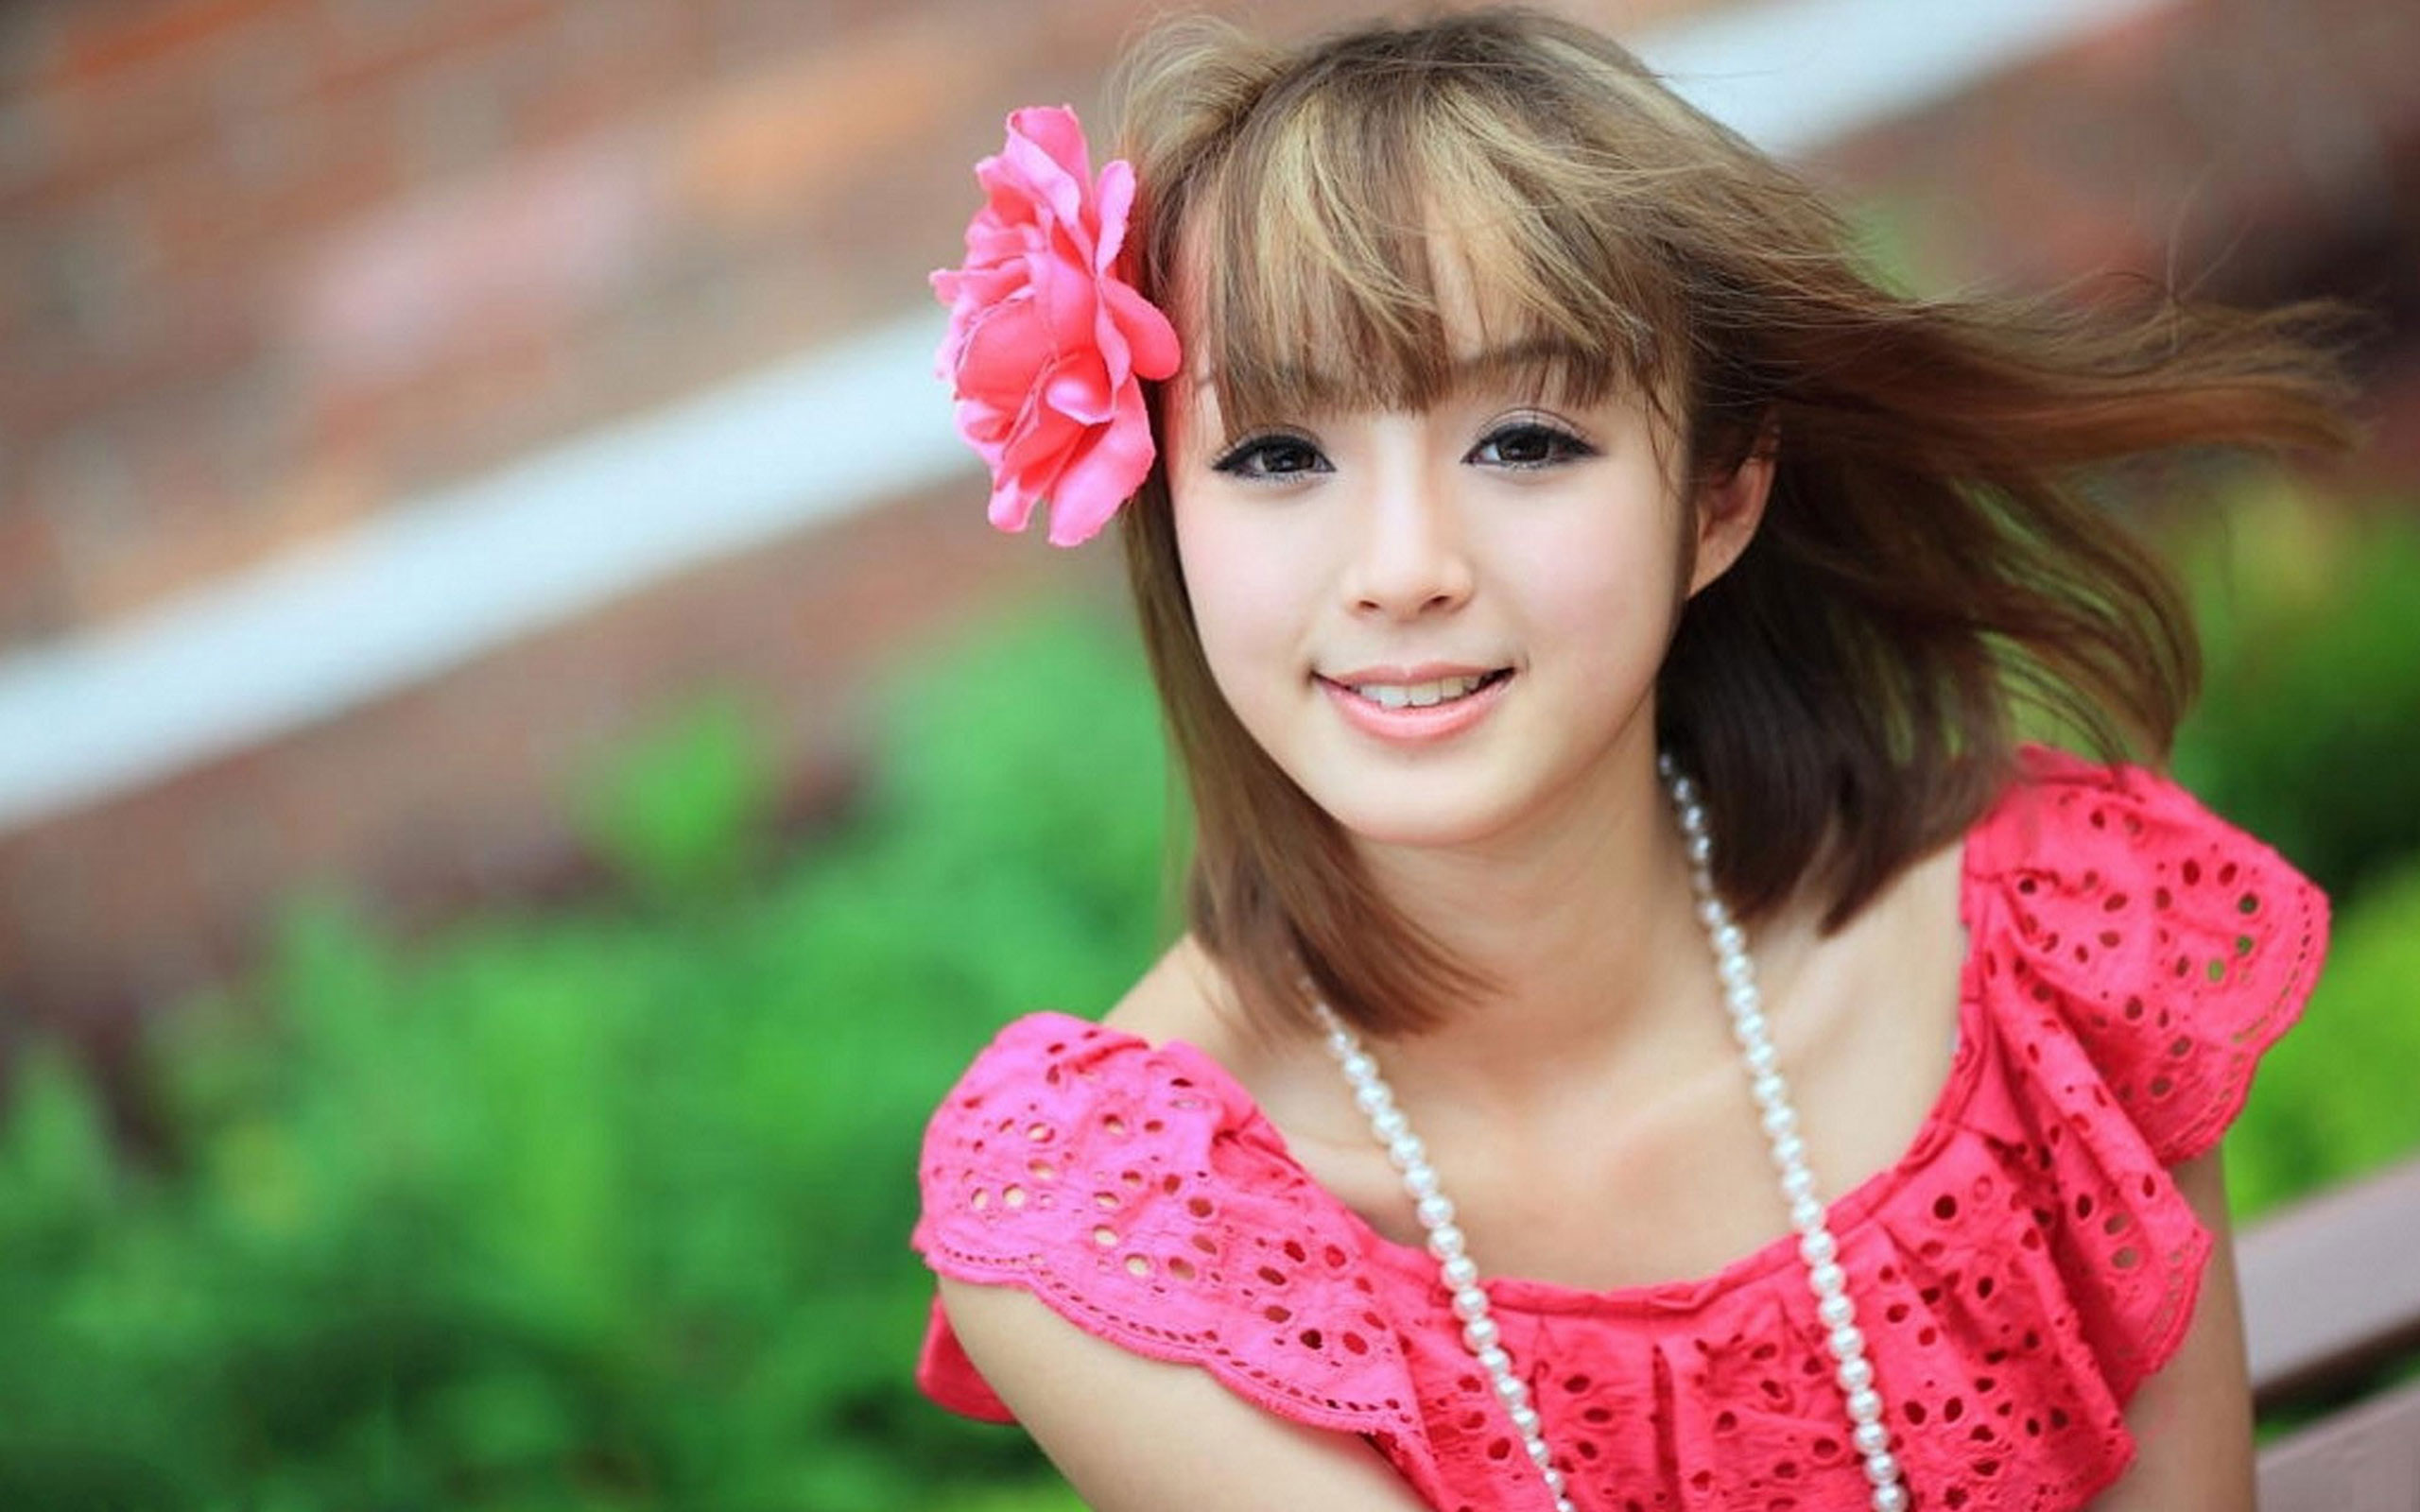 6940806-cute-girl-in-pink-dress-b5db122e99dd382eafeb3cc5159c9e3b.jpg